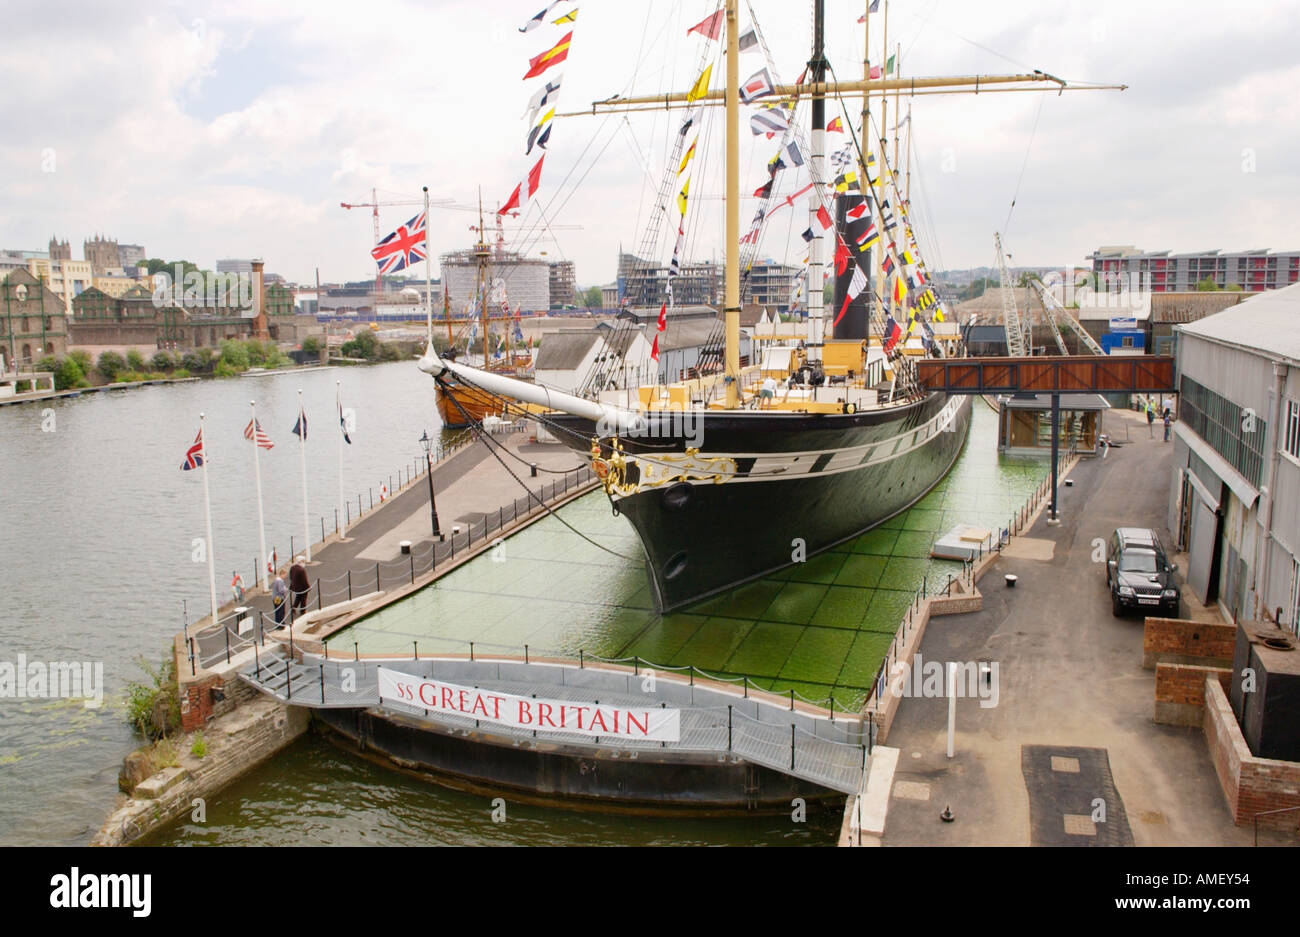 View over the SS Great Britain ocean-going passenger steamship built by Victorian engineer Isambard Kingdom Brunel in Bristol - Stock Image